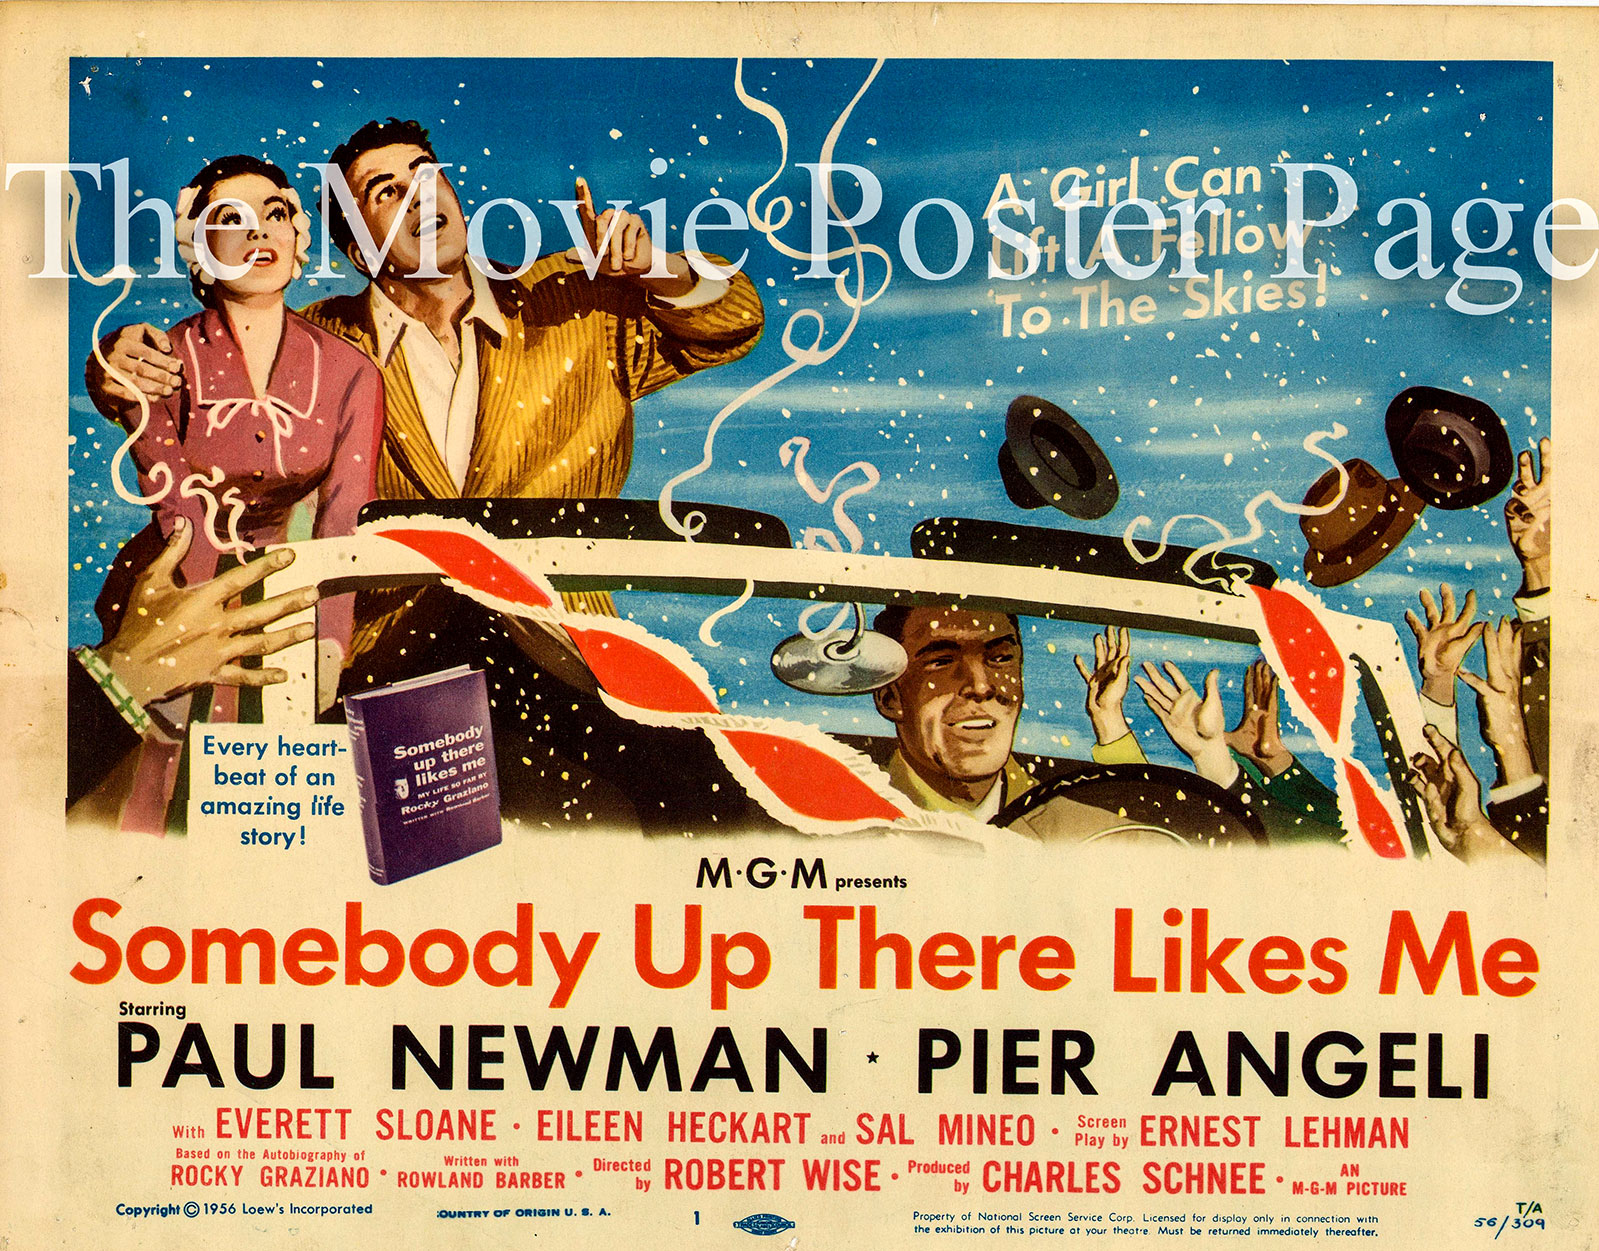 Pictured is a US lobby card for the 1956 Robert Wise film Somebody up There Likes Me starring Paul Newman and Pier Angeli.